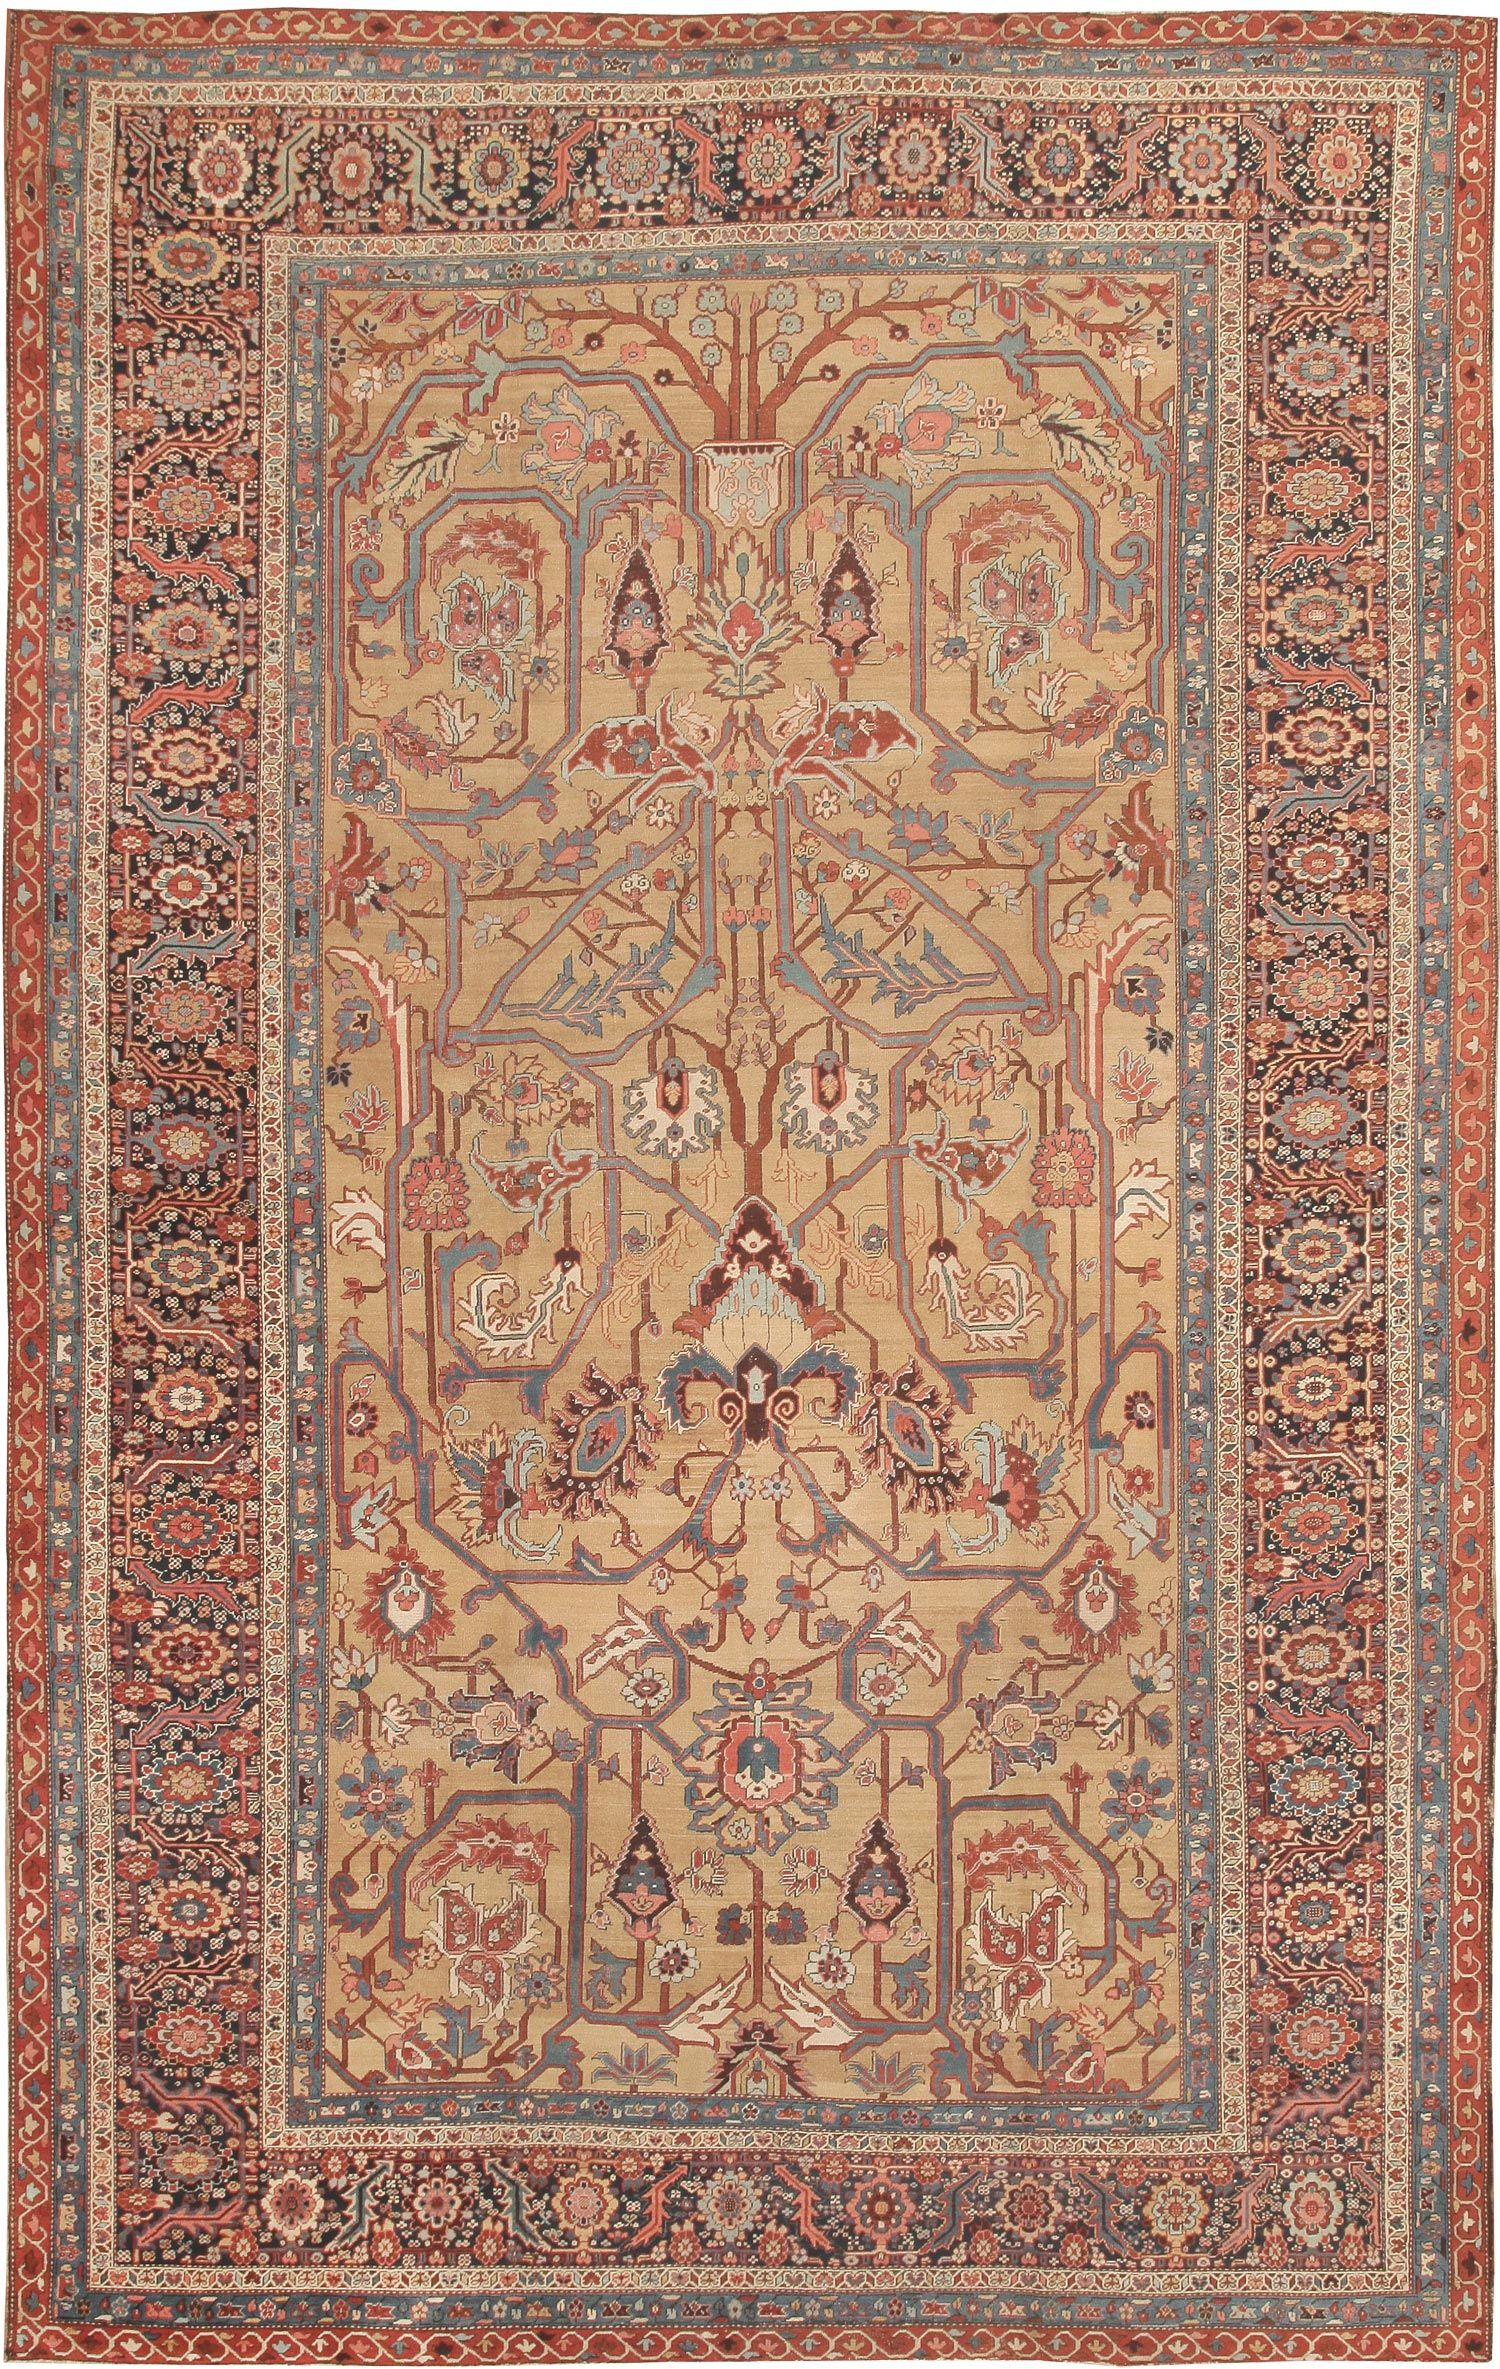 Antique Bakshaish Persian Rug 41787 Main Image By Nazmiyal With